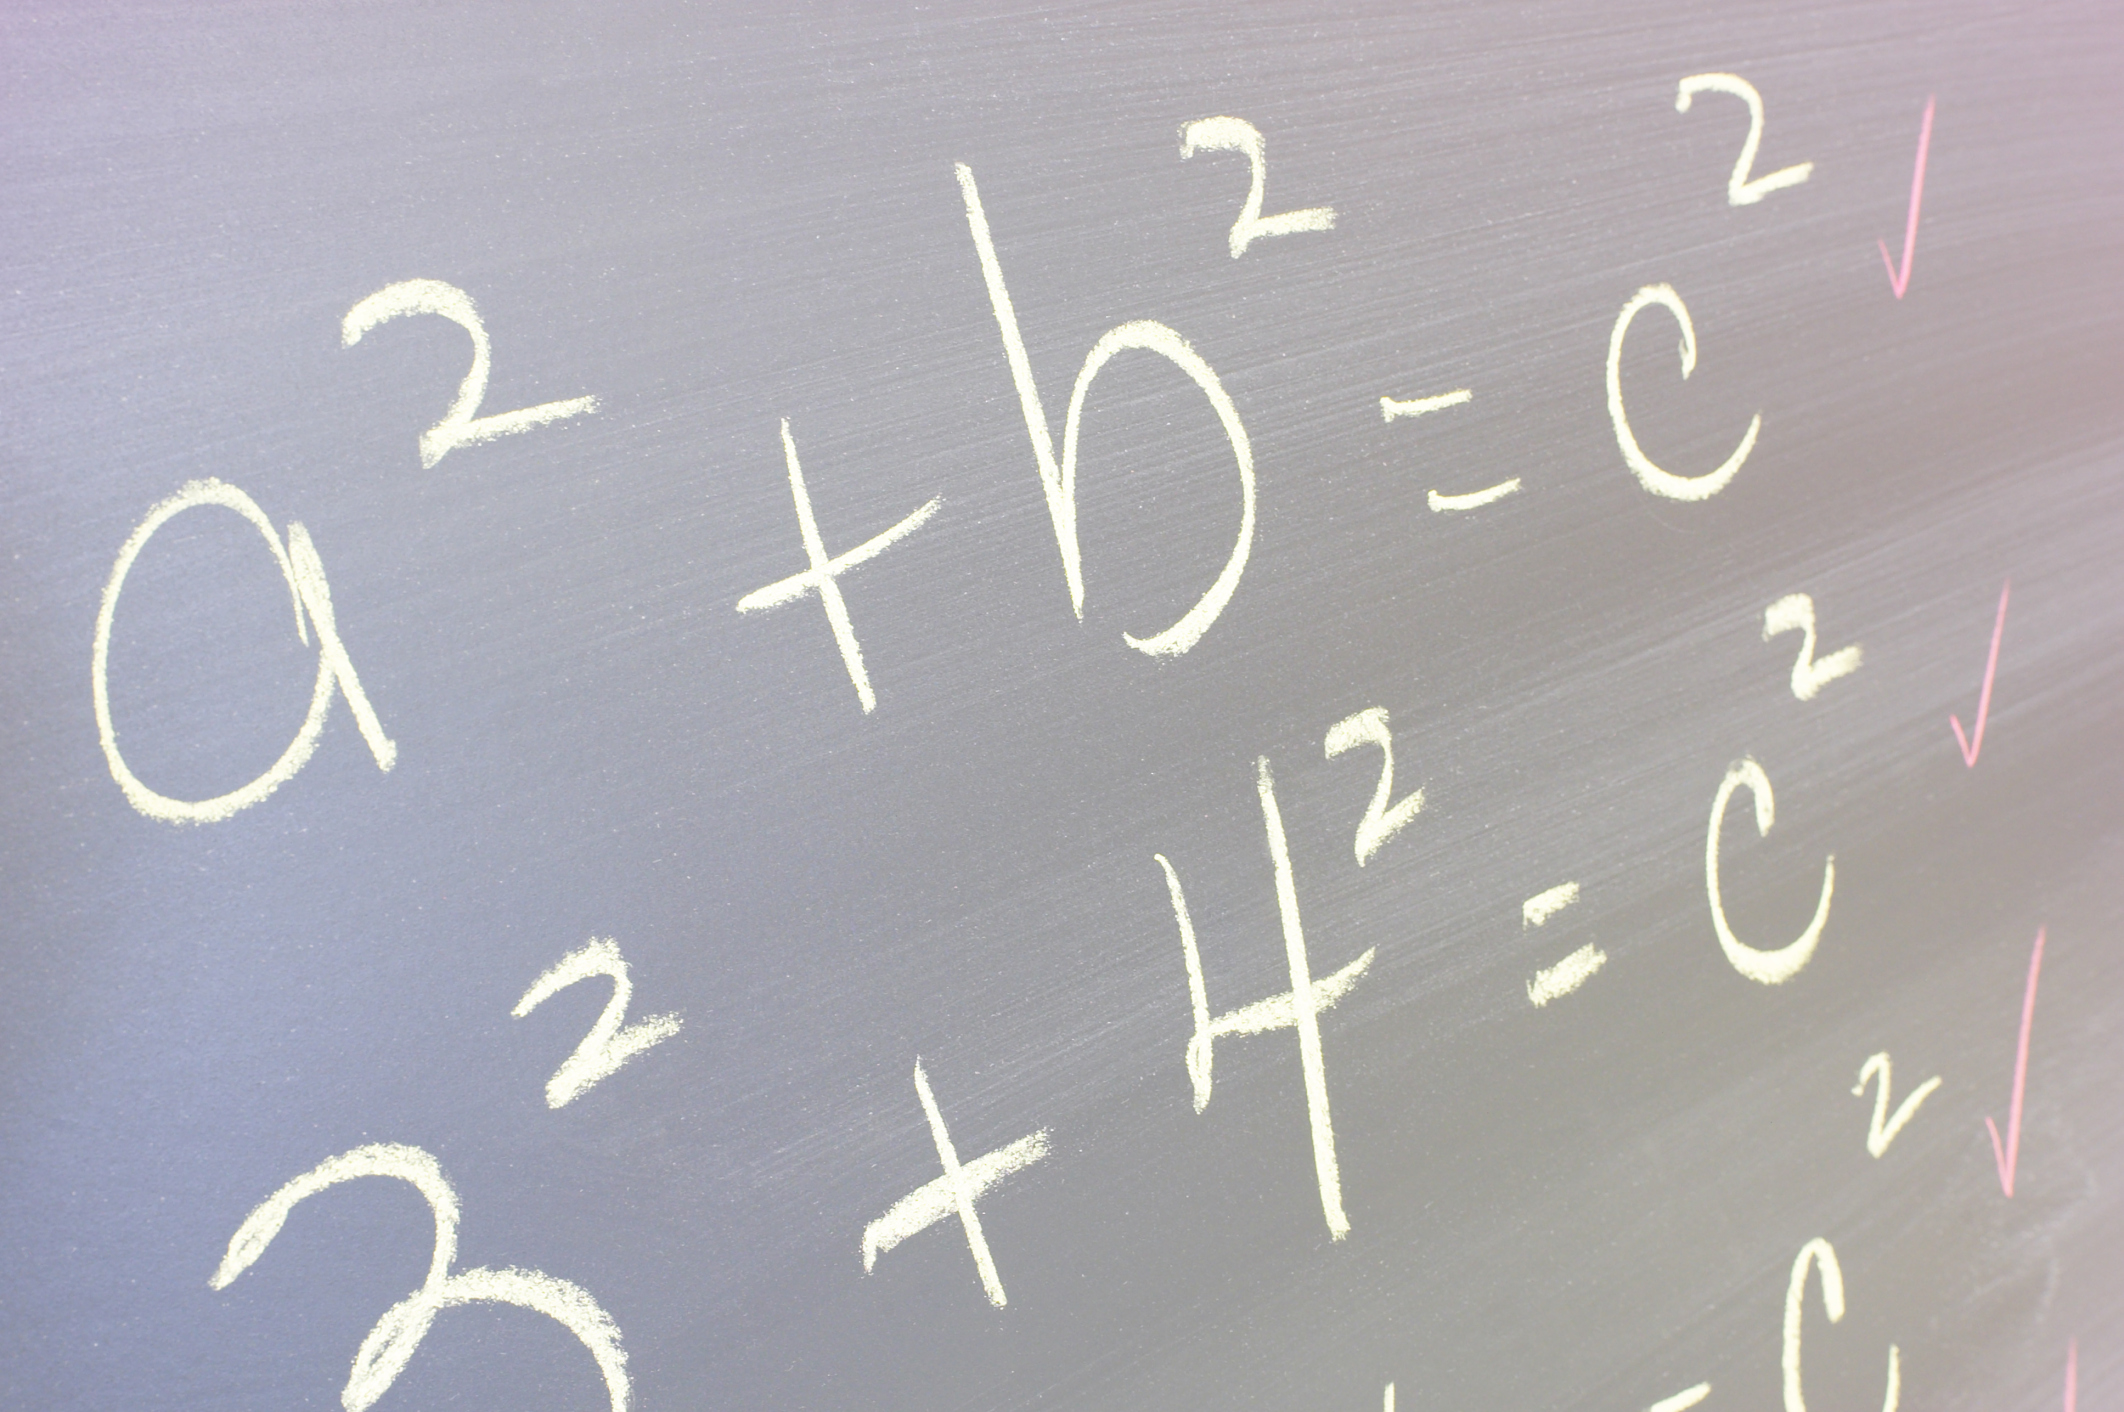 What Should A 10th Grade Math Student Know